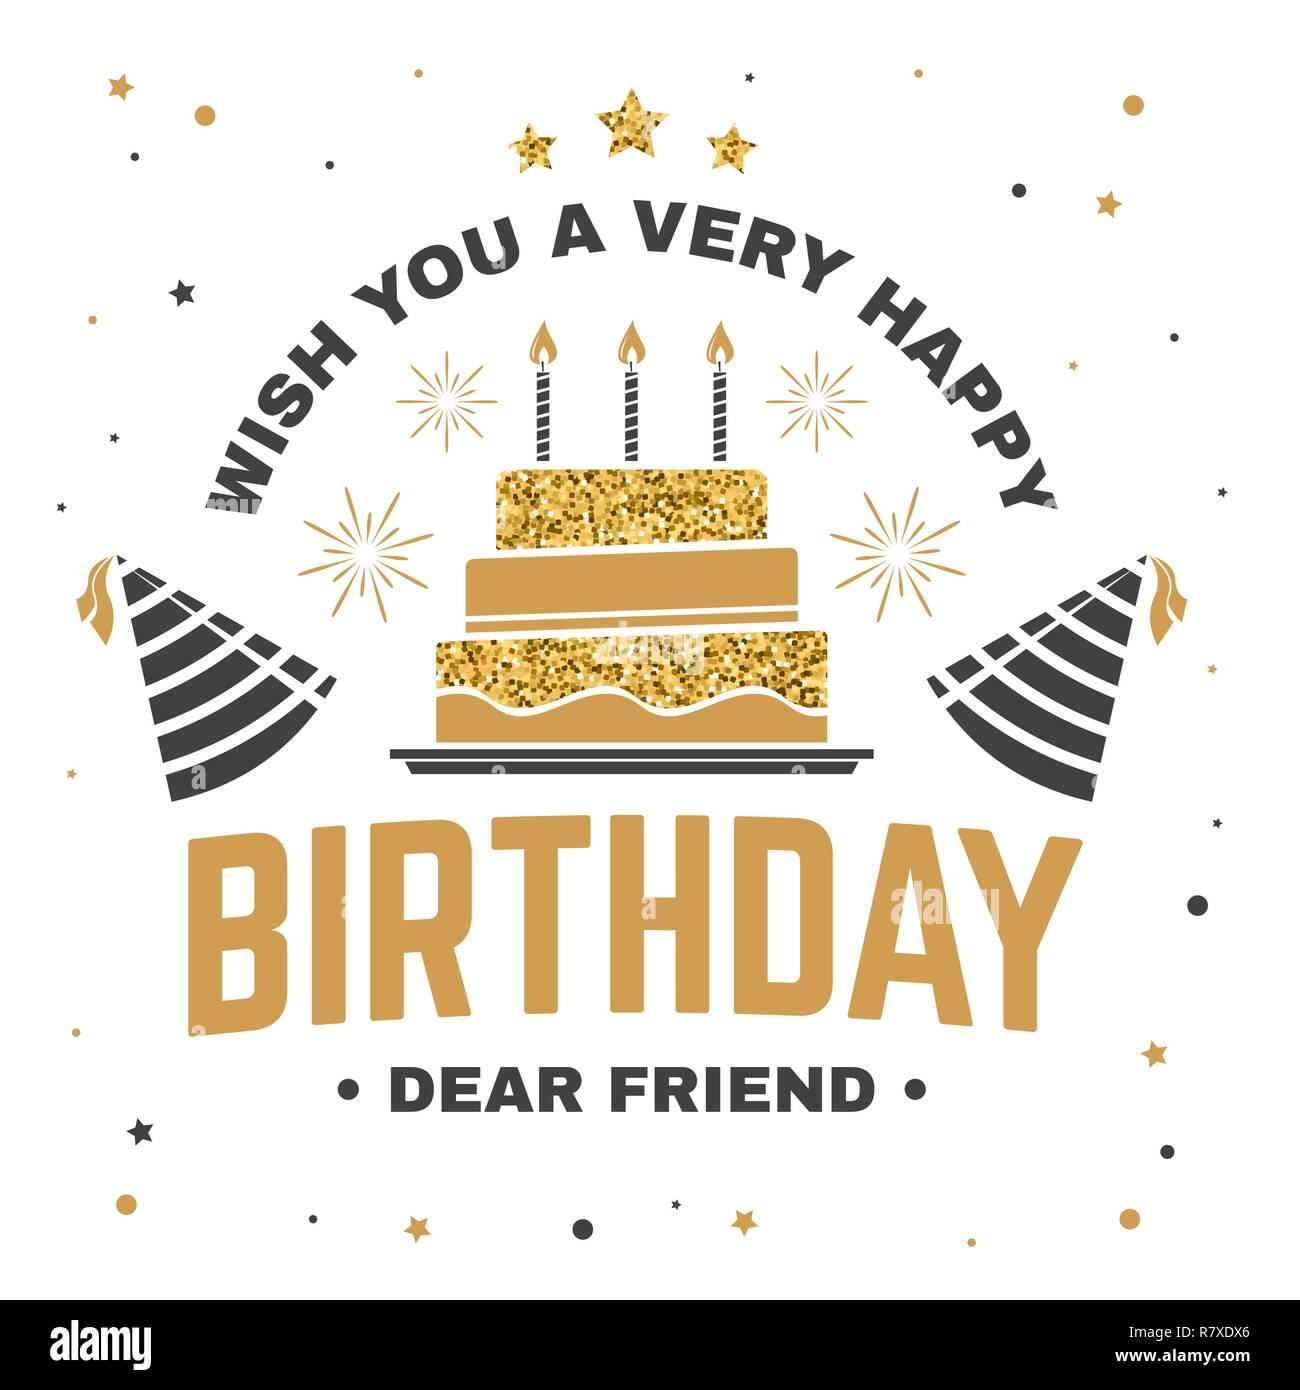 Wish You A Very Happy Birthday Dear Friend Badge Sticker Card With Hat Firework And Cake Candles Vector Vintage Typographic Design For